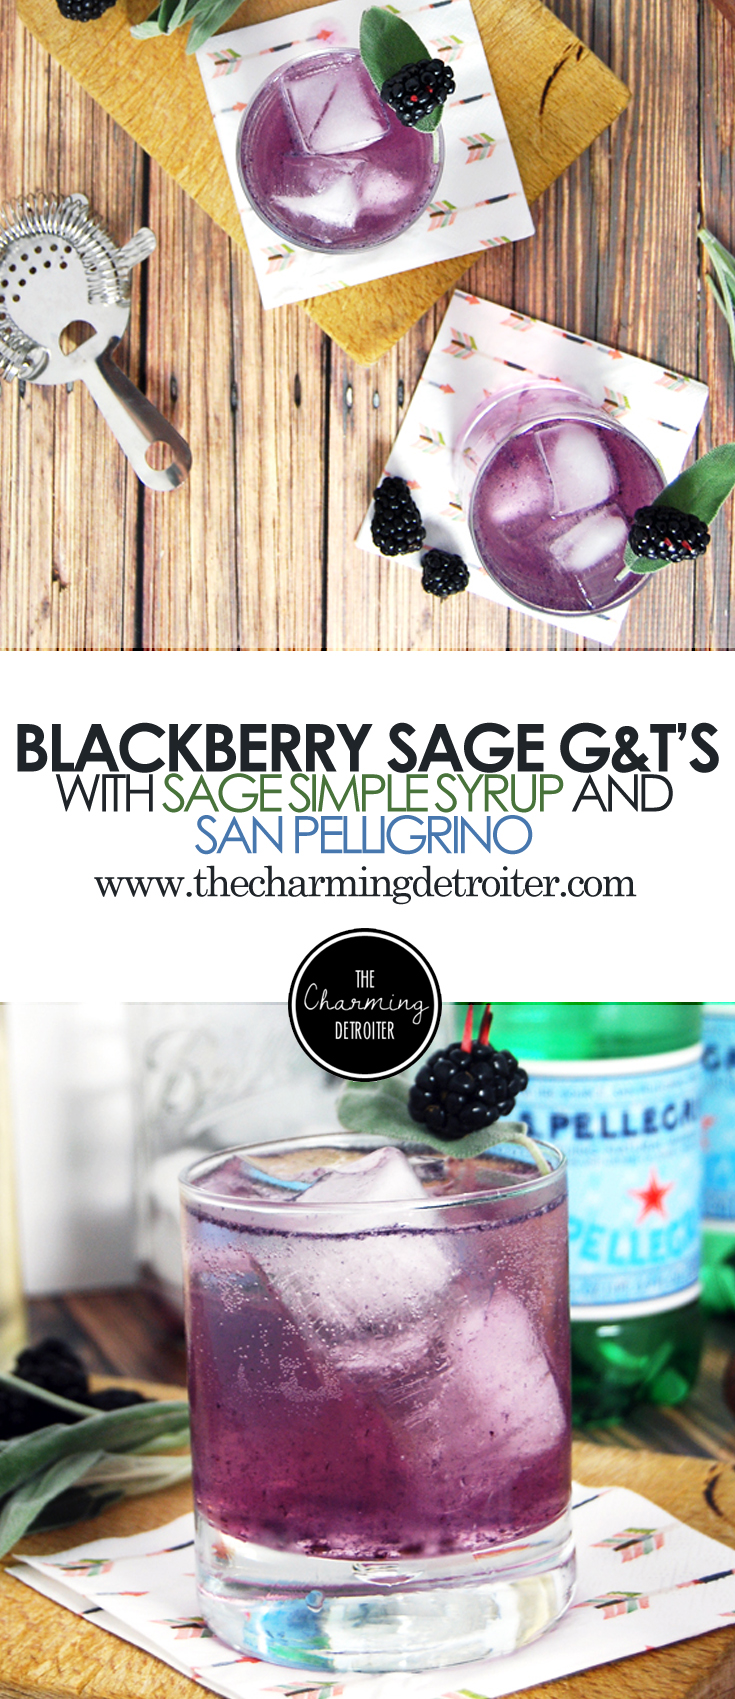 Blackberry Sage G+T's: Gin and tonics get a sweet upgrade with blackberries and sage simple syrup.